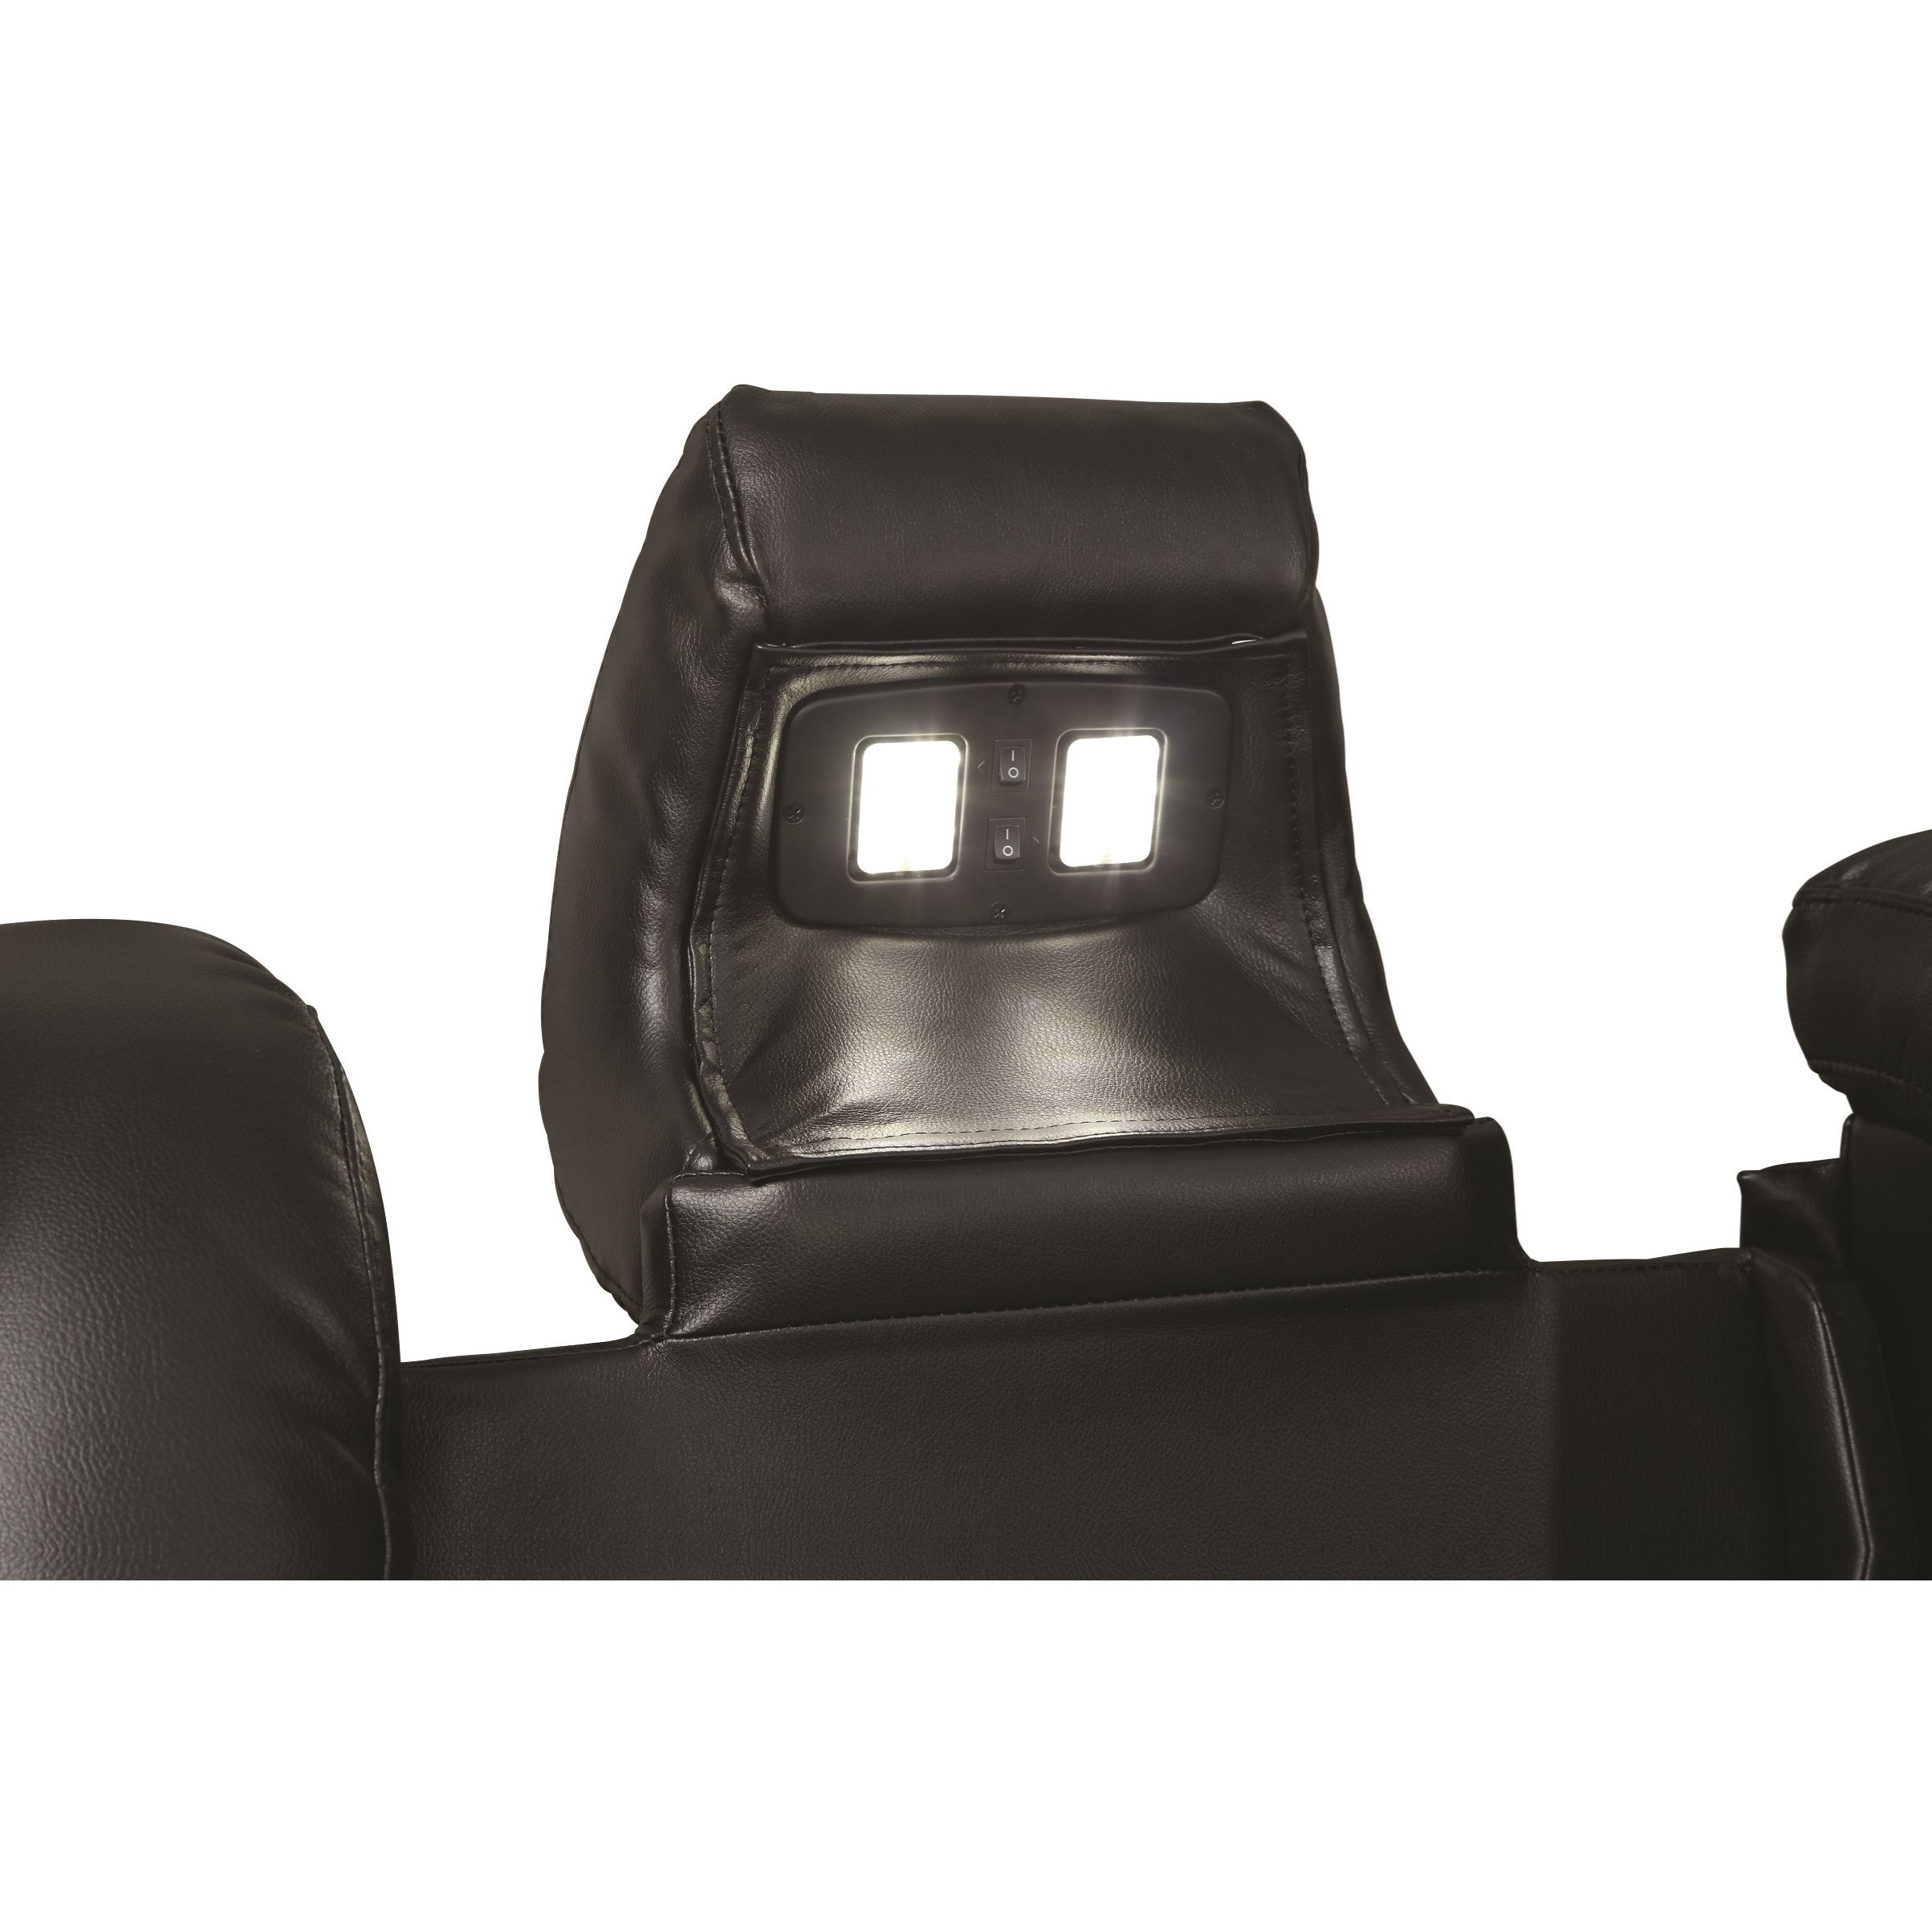 Delangelo Theater Power Leather Reclining Sofa With Cup